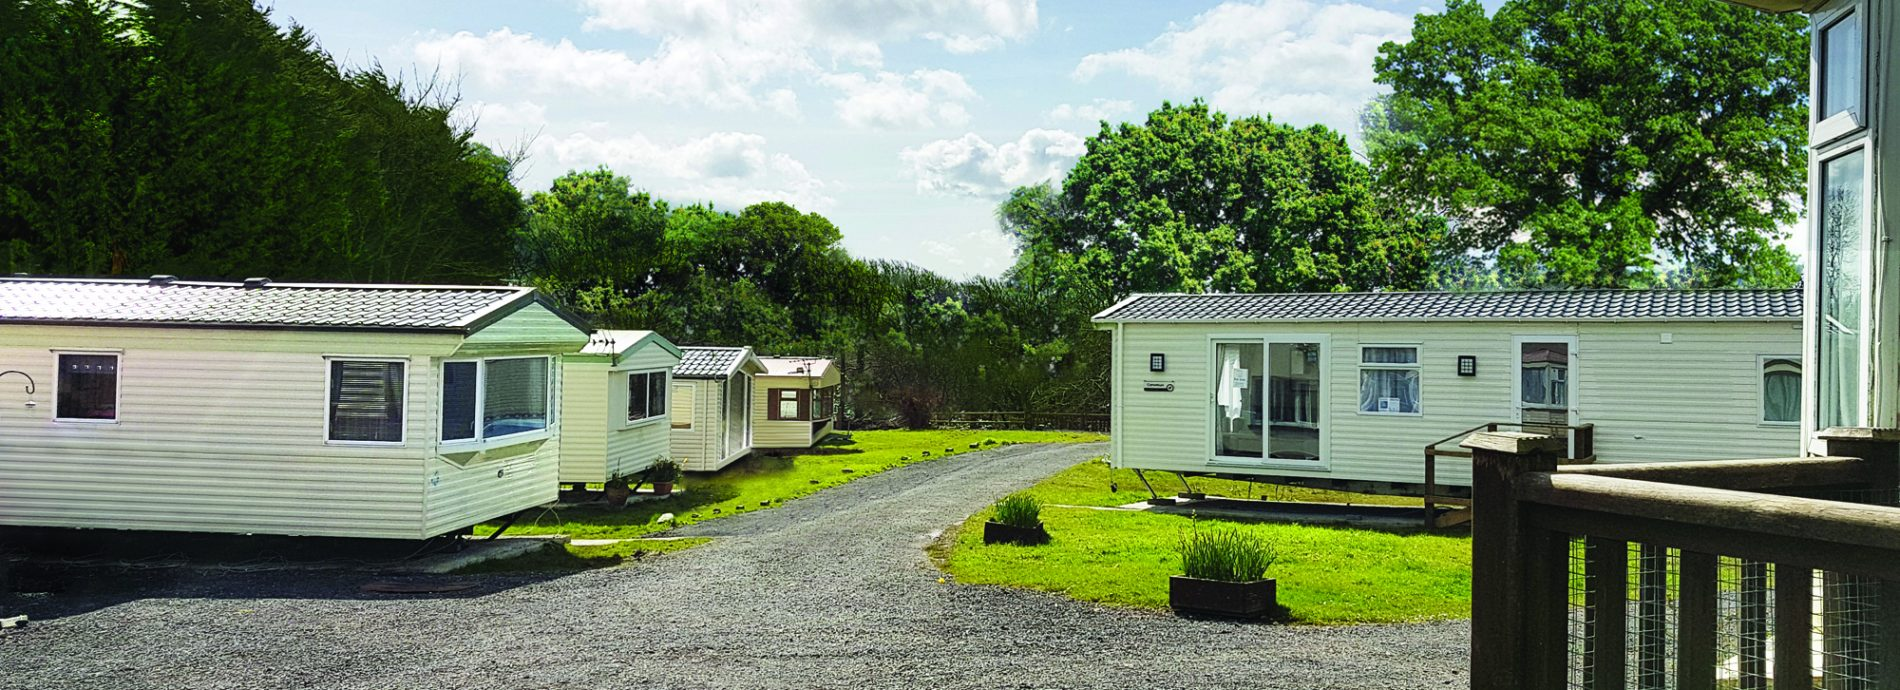 https://www.rosehillcaravanpark.co.uk/wp-content/uploads/2020/11/20180405_115629-aspect-ratio-1900-690.jpg